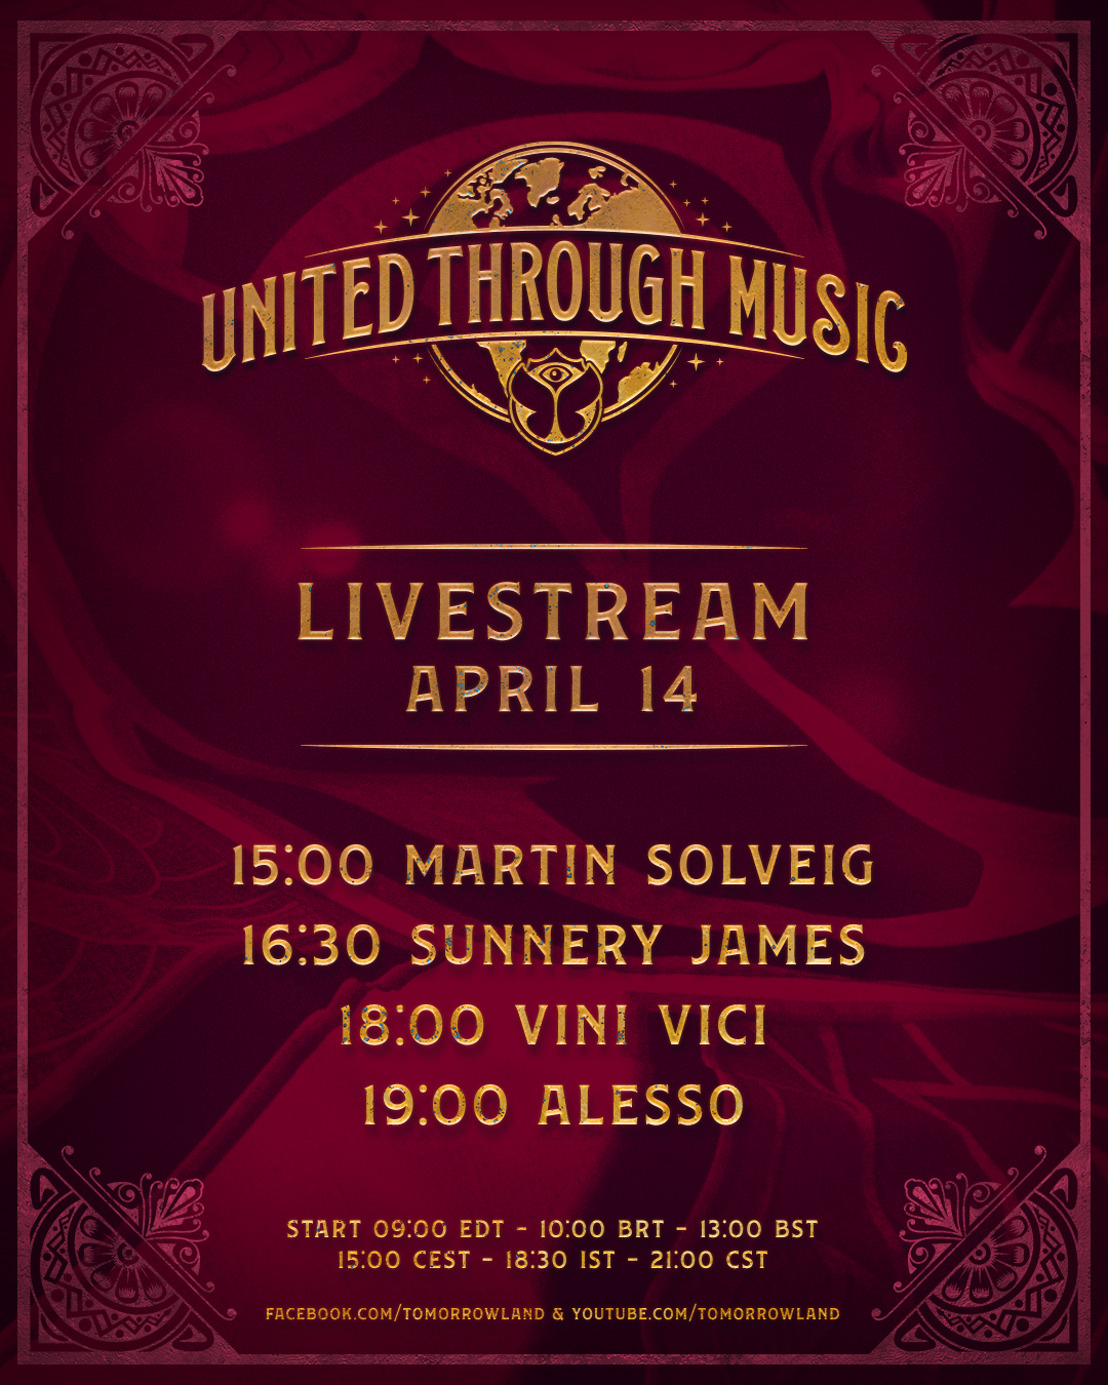 Alesso, Sunnery James, Martin Solveig and Vini Vici will perform unique live sets on 'Tomorrowland Presents: United Through Music'